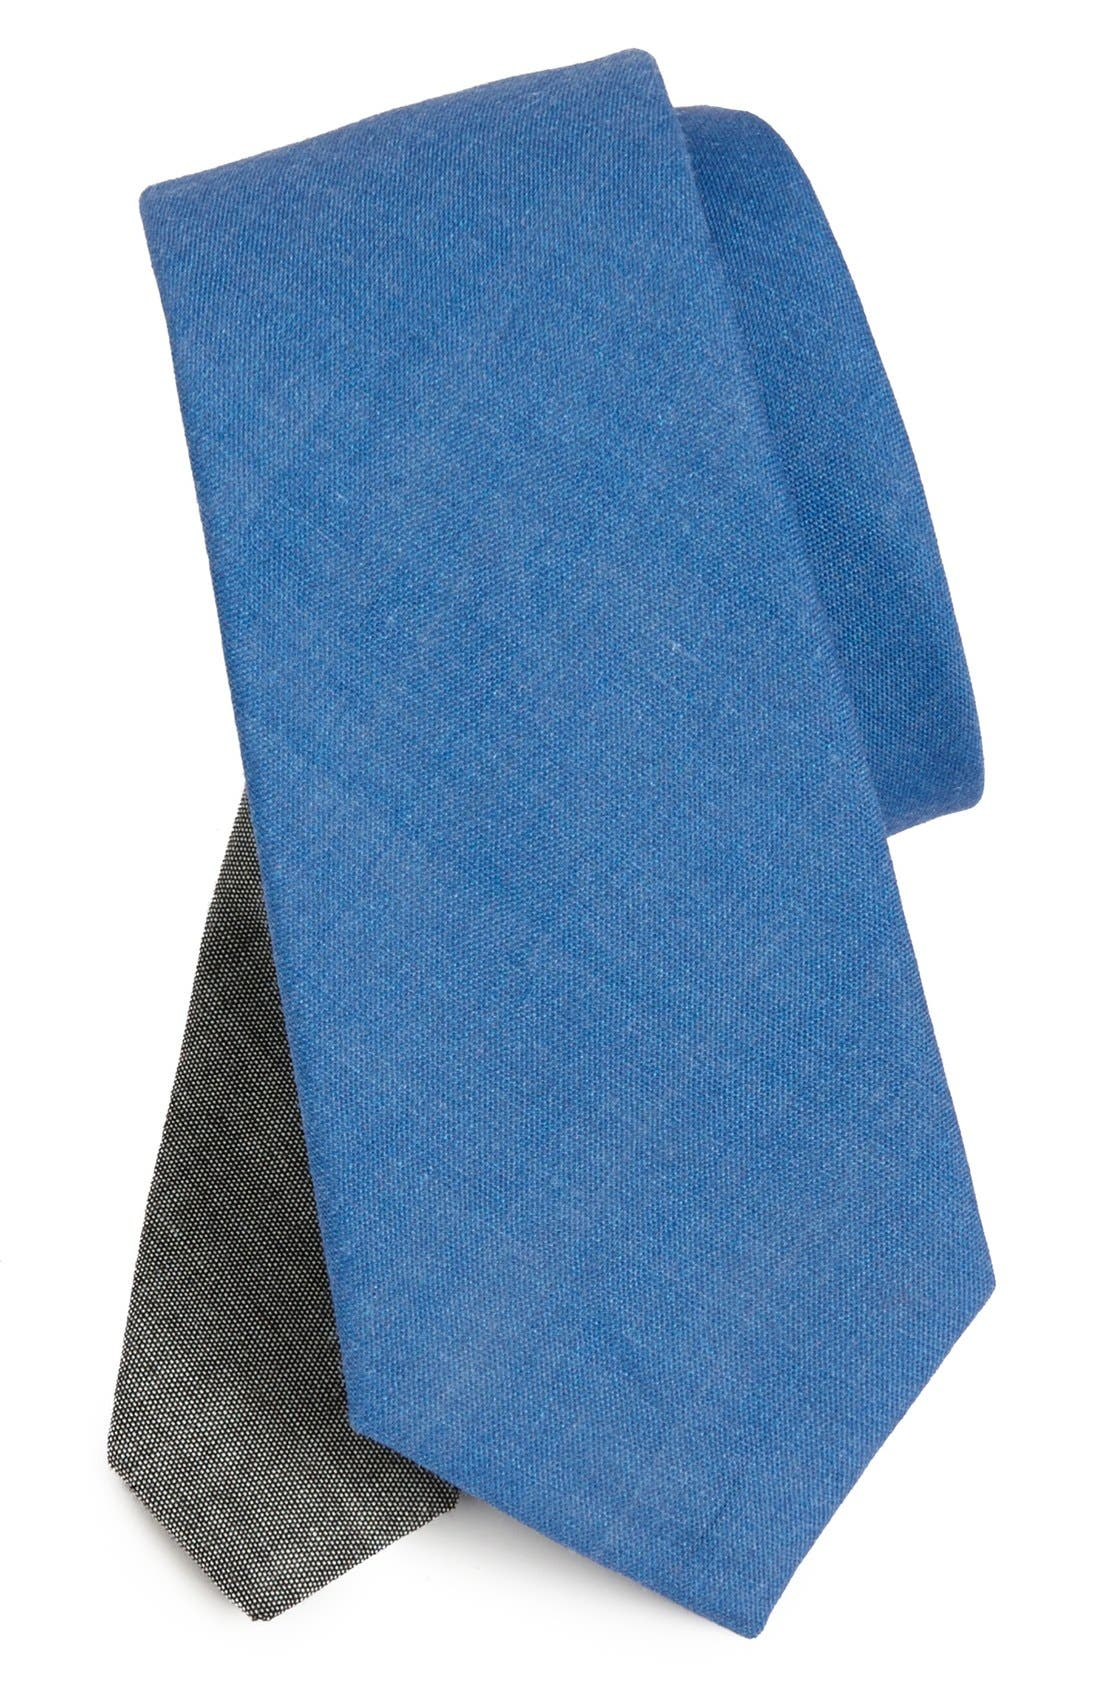 Main Image - EDIT by The Tie Bar Solid Linen Tie (Nordstrom Exclusive)